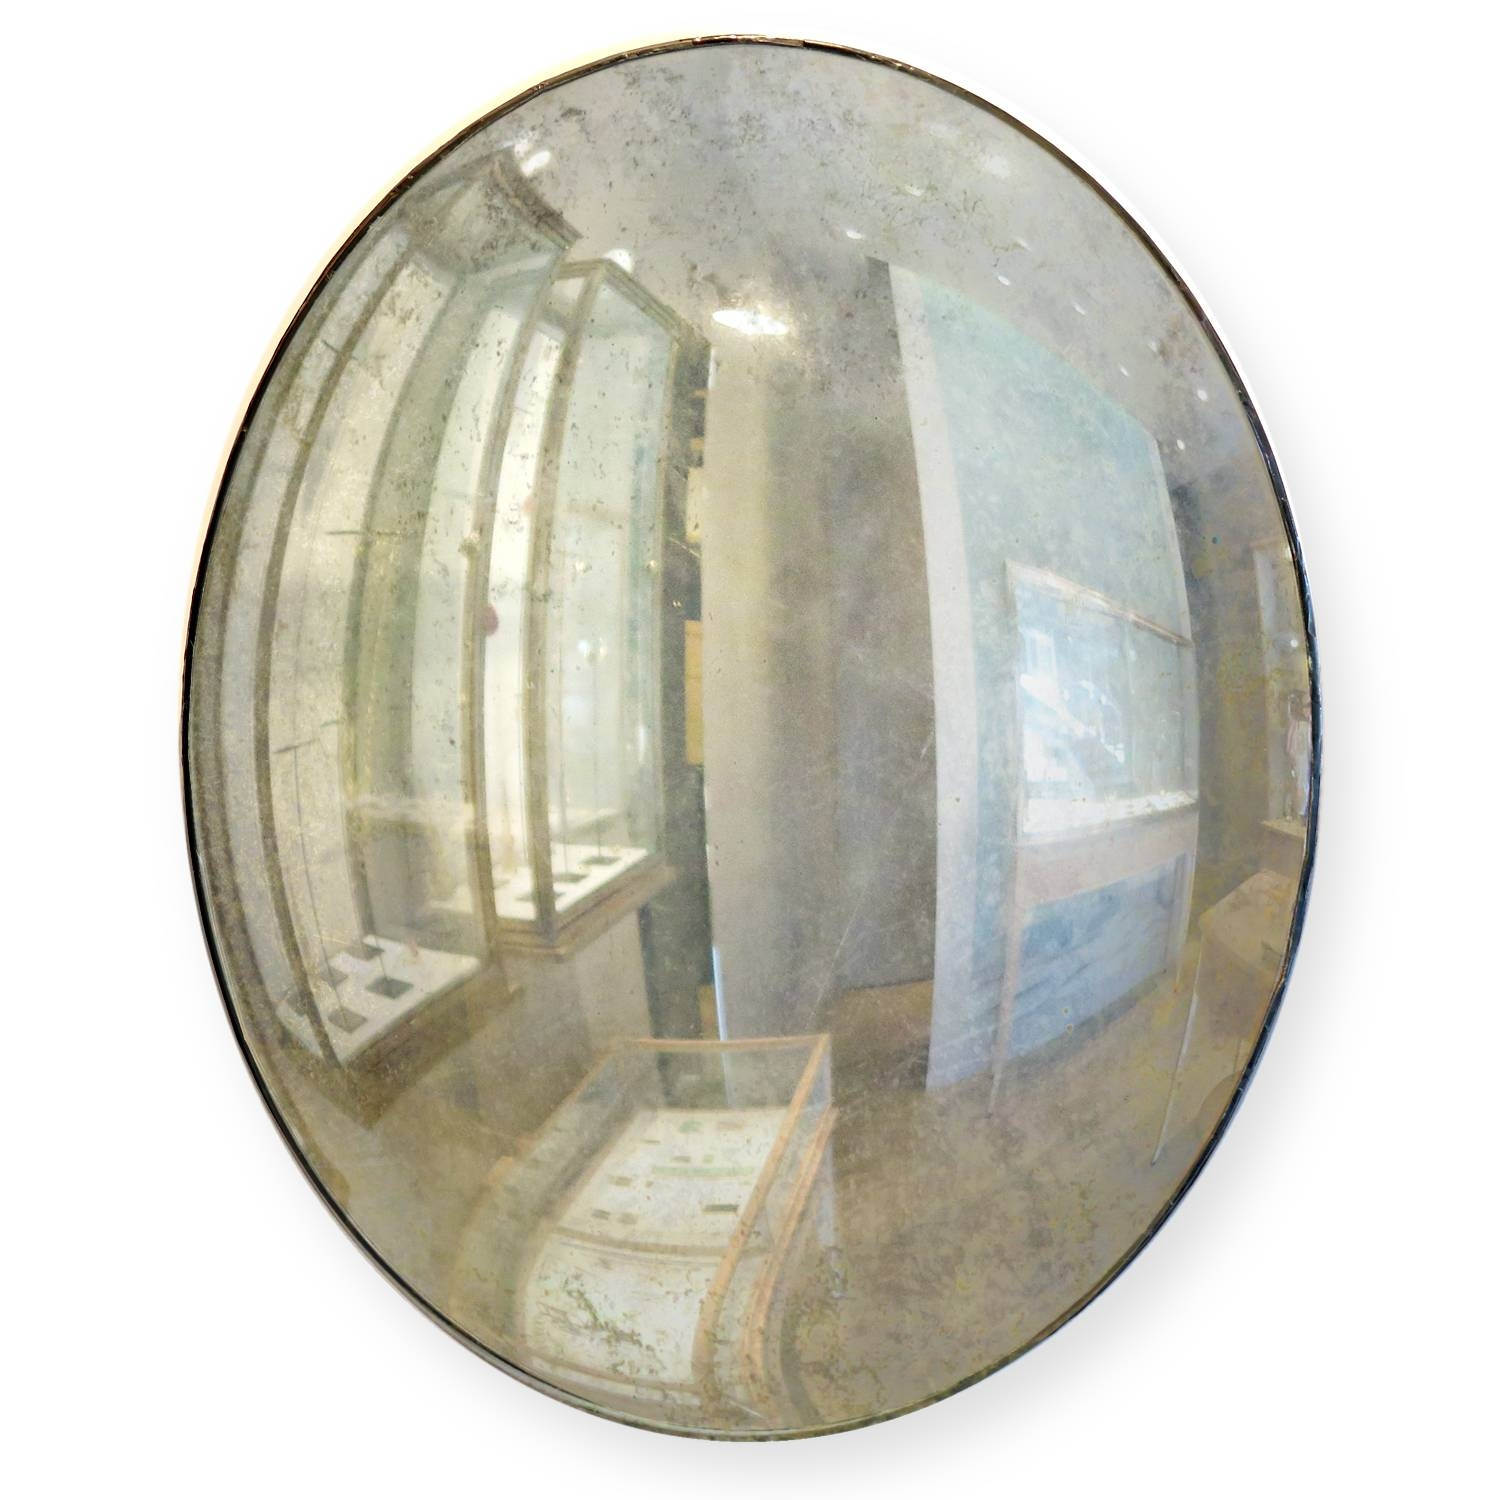 Maureen Fullam 16 X 20 Inches Large Convex Oval Silver Leafed with Large Convex Mirrors (Image 17 of 25)